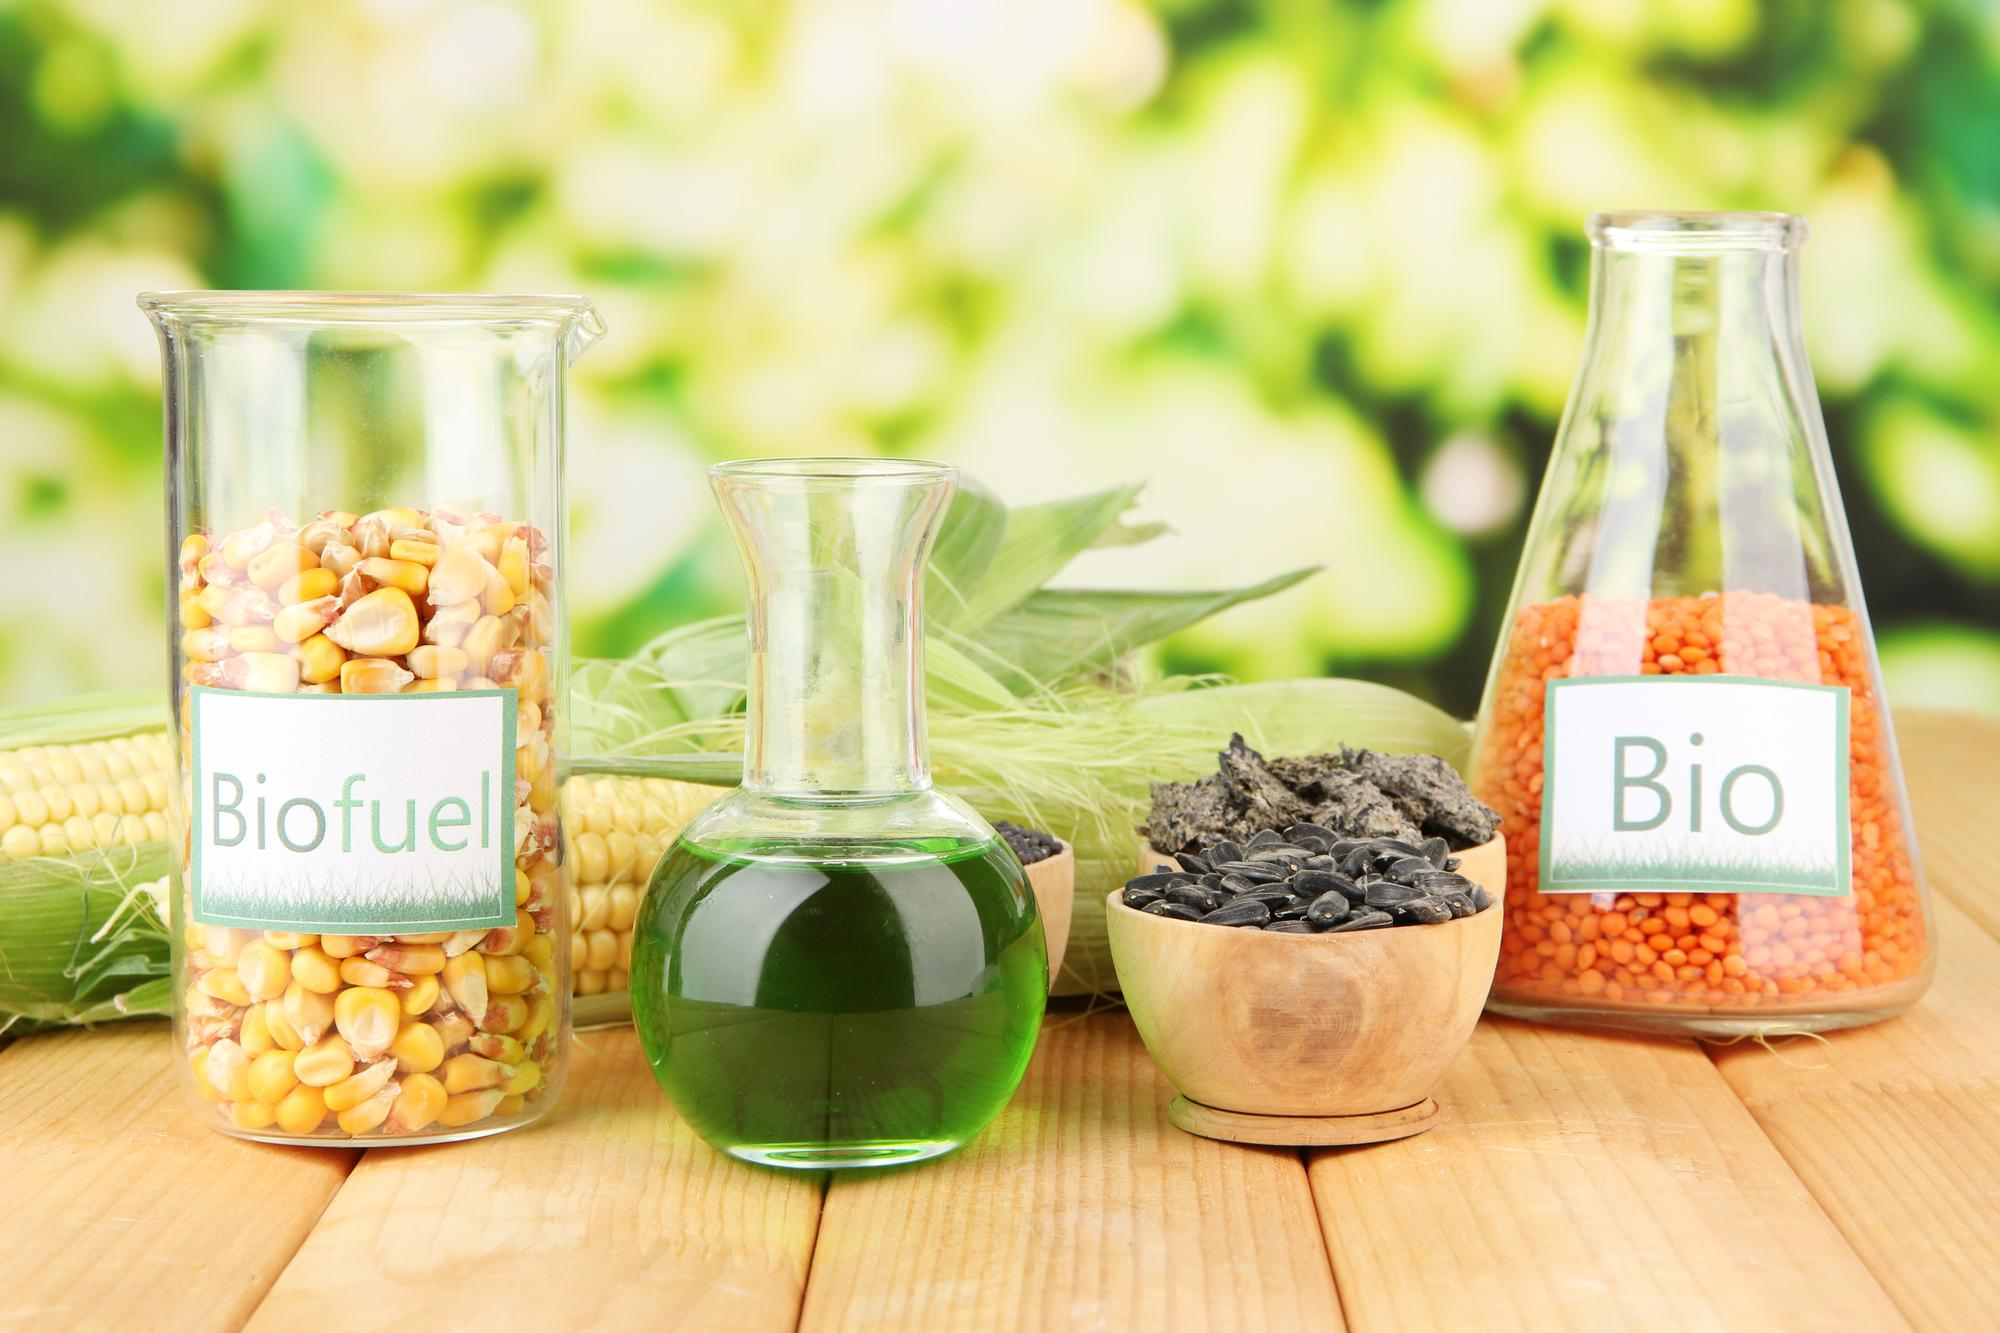 Are Biofuels Our Future?